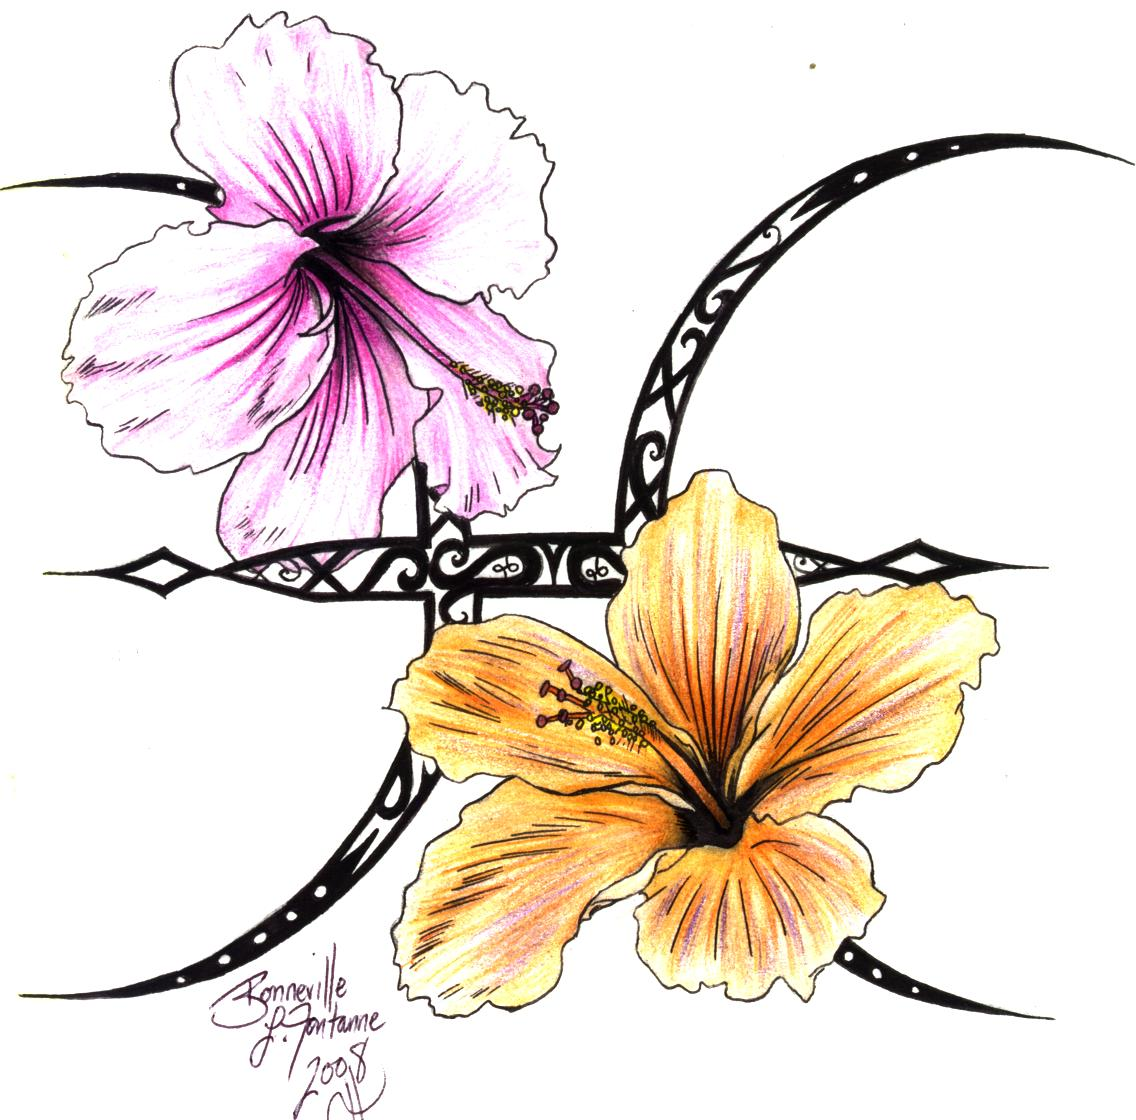 Pisces hibiscus tattoo by d angeline on deviantart pisces hibiscus tattoo by d angeline izmirmasajfo